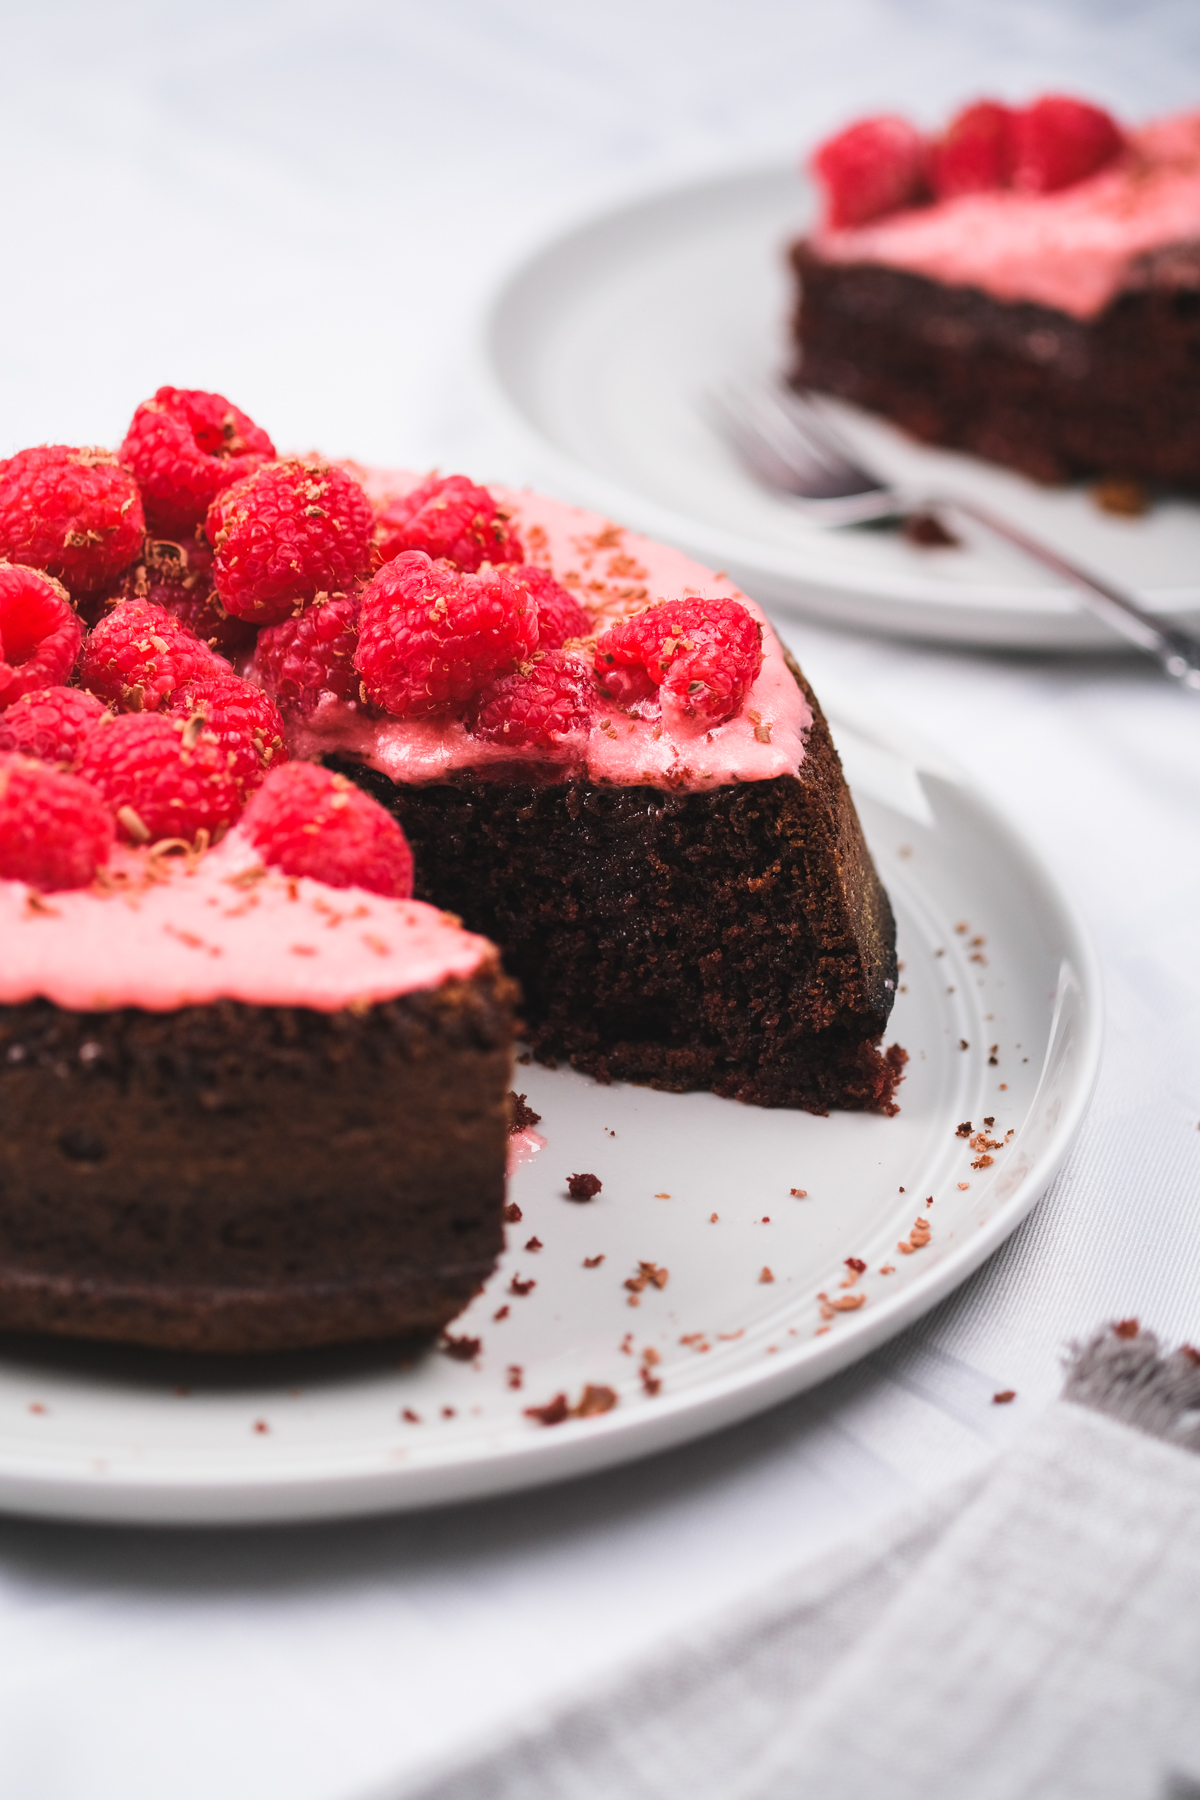 slicing up a chocolate raspberry cake with fresh berries and chocolate shavings